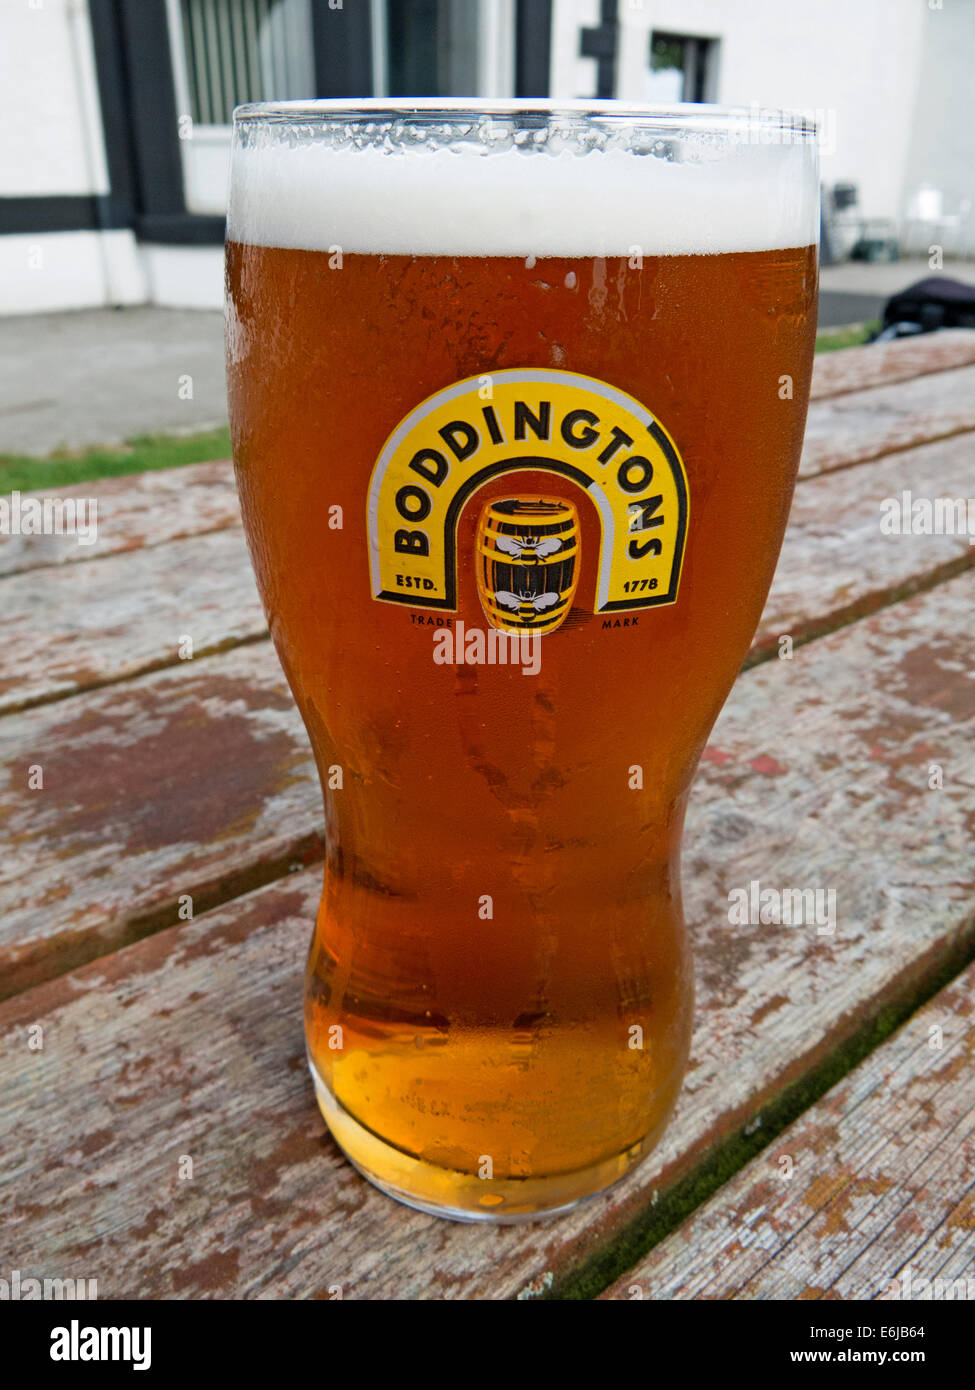 with,a,head,withahead,beer,Boddington,regional,ale,brewed,in,Mossside,pint,glass,boddies,hoppy,widget,draught-style,draught,style,cream,brewing,co,company,Strangeways,whitbread,Anheuser–Busch,InBev,outside,on,a,bench,table,wood,wooden,cask,conditioned,Pub,barrel,regional,national,Madchester,Gotonysmith,the,of,creamOfManchester,bee,bees,logo,city,product,NW,England,UK,GB,Great,britain,Anheuser,Busch,Hydes,Brewery,in,Moss,Side,Kestrel,kegging,facility,prison,HMP,demolished,blandly,foamy,nitrokeg,travesty,of,the,original,version